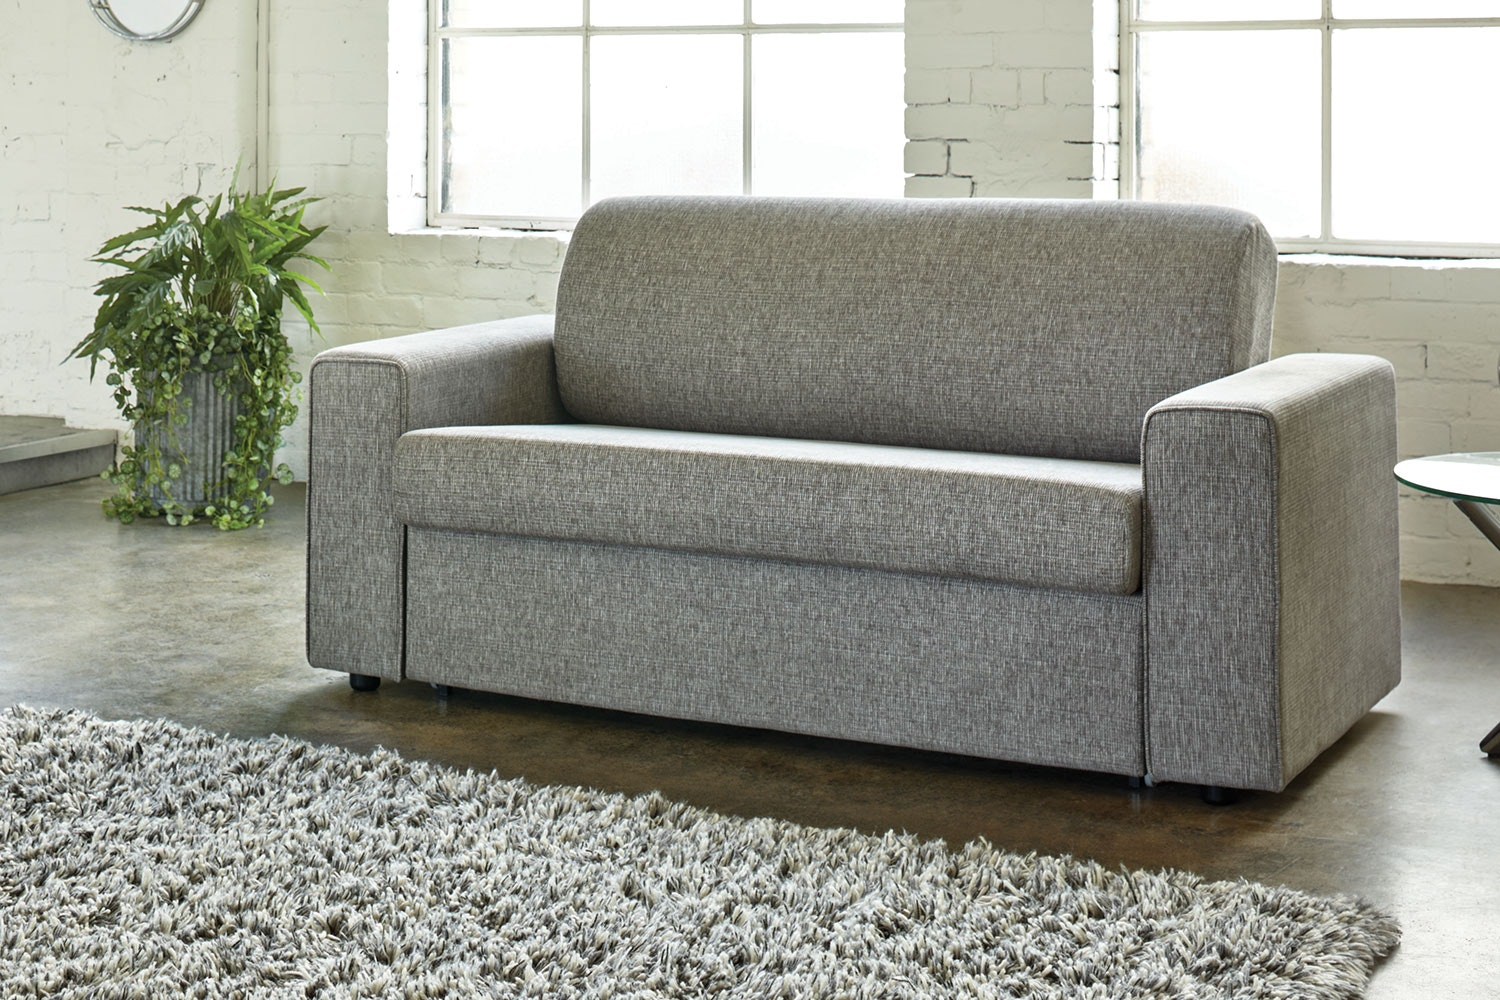 Kansas Bulk Grade Fabric Sofa Bed by Evan John Philp